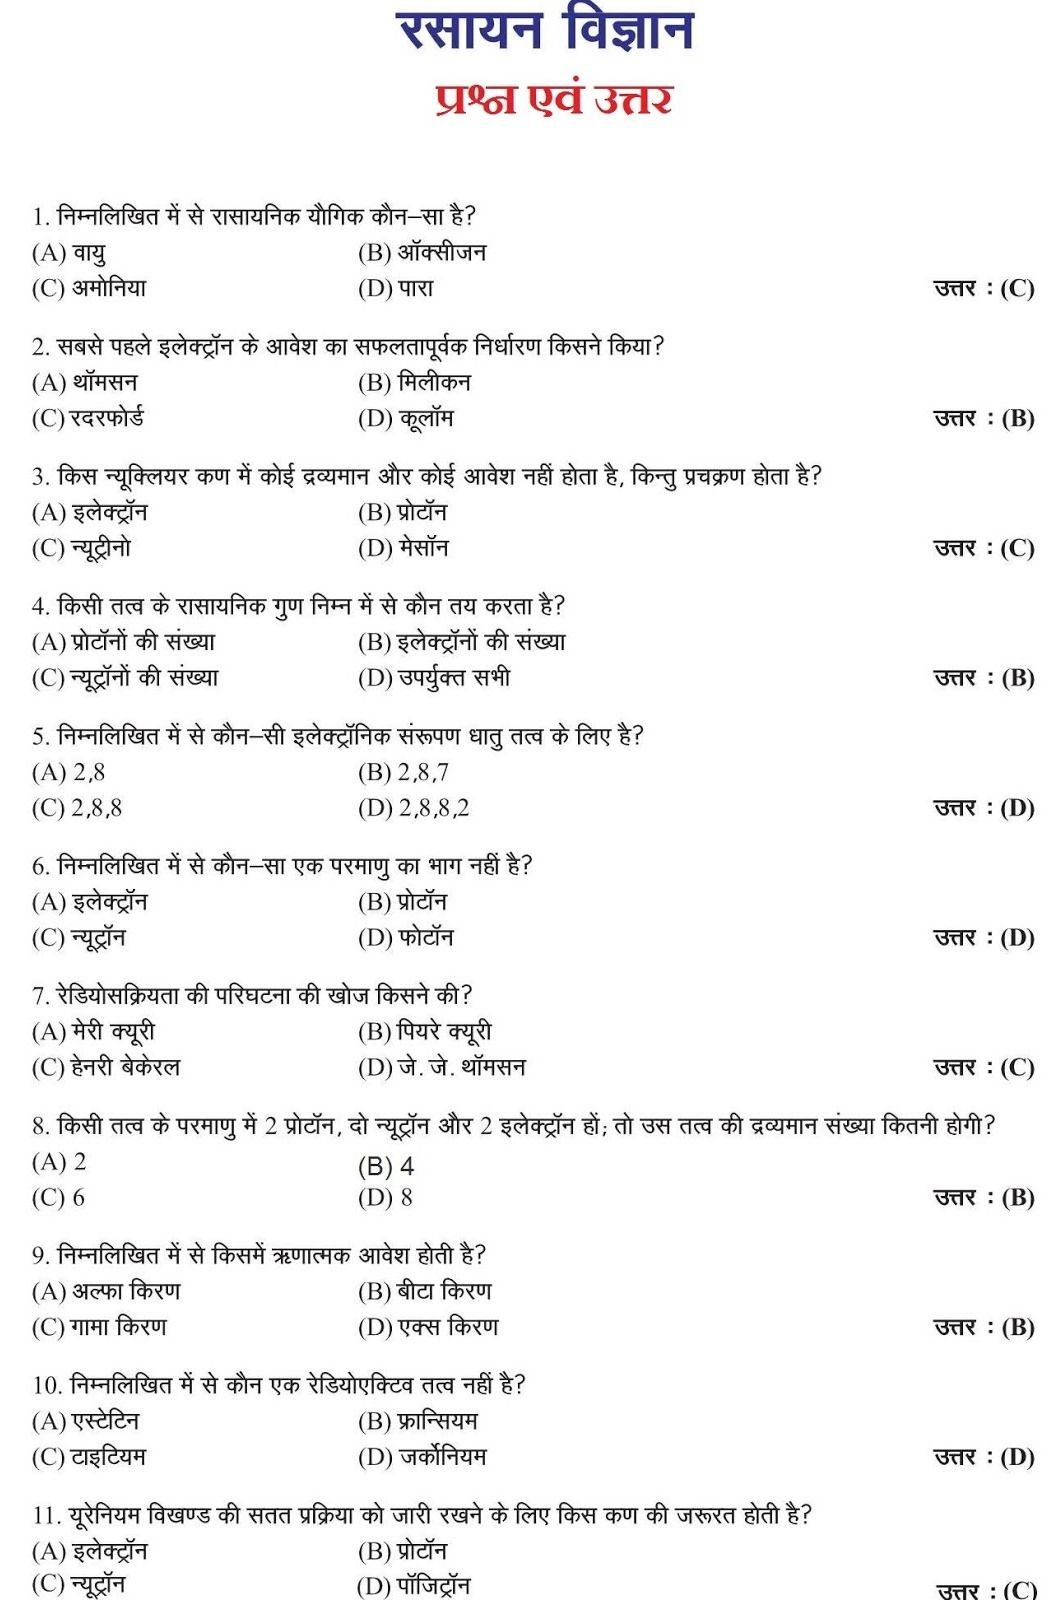 GKCHEMISTRY GENERAL KNOWLEDGE QUESTIONS AND ANSWERSGK